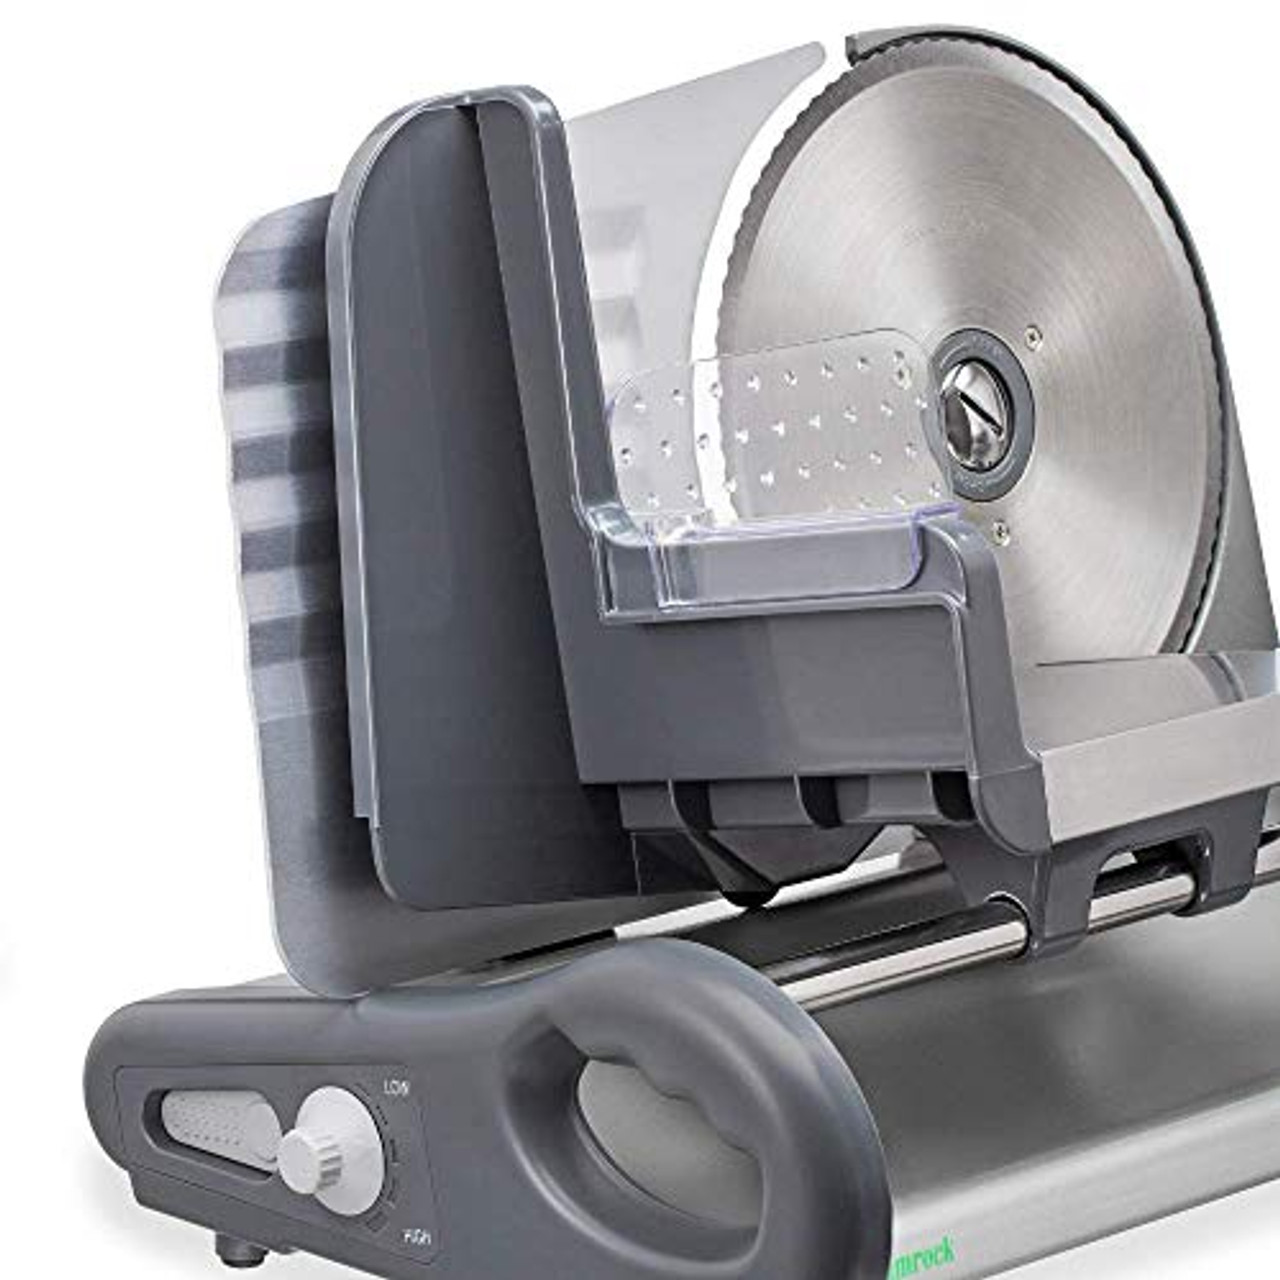 Shamrock X-Large 8.5 Stainless Steel Food Slicer w//Speed Control